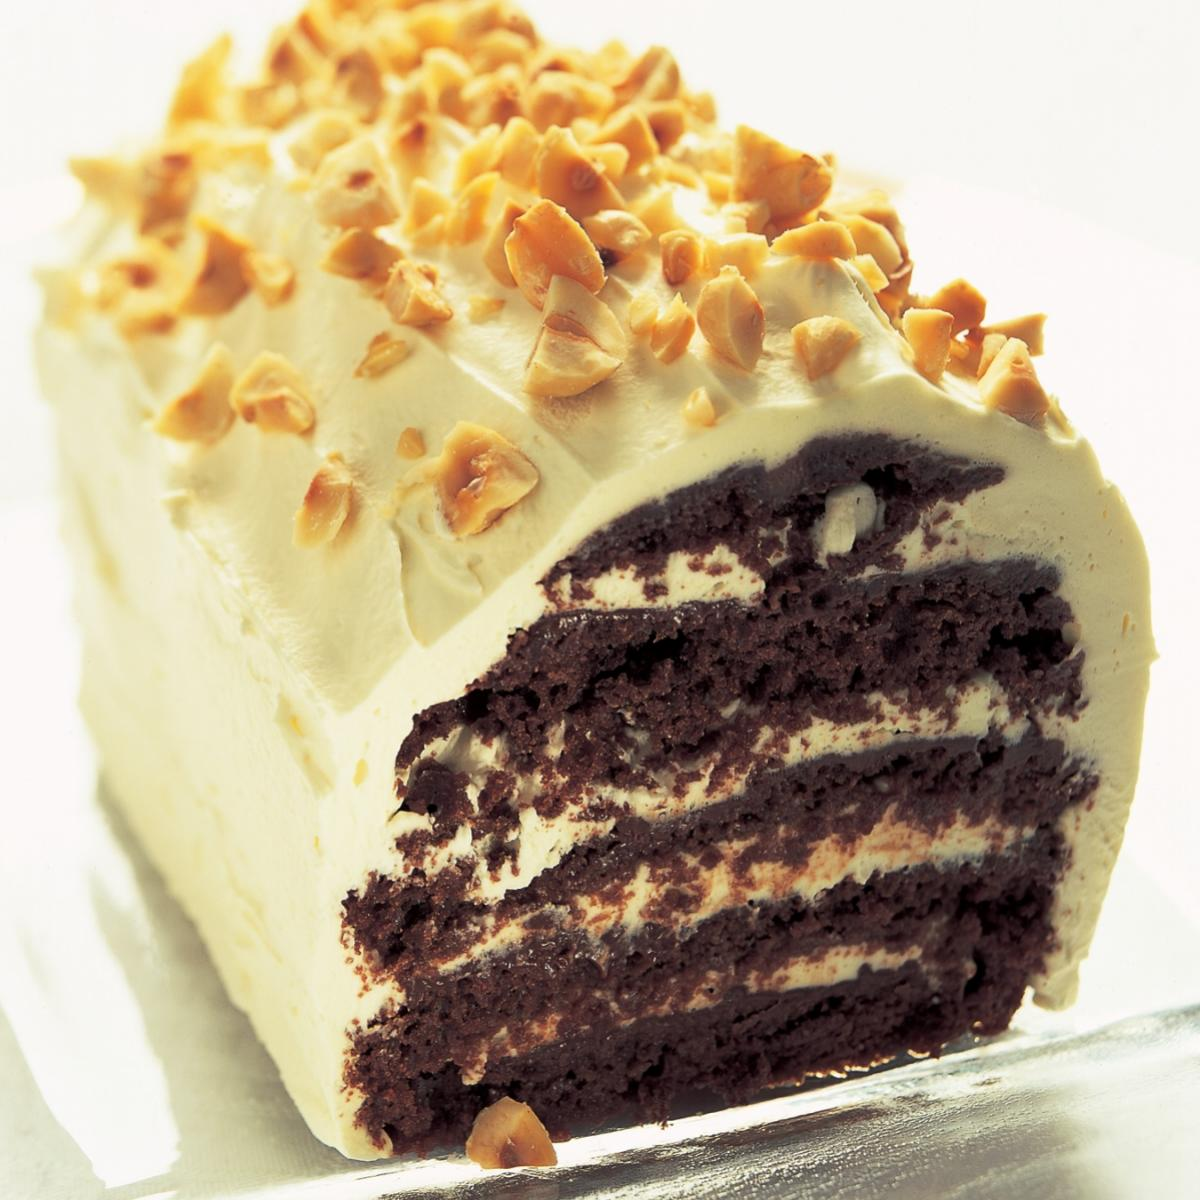 A picture of Delia's Cheats' Chocolate Rum Gateau recipe